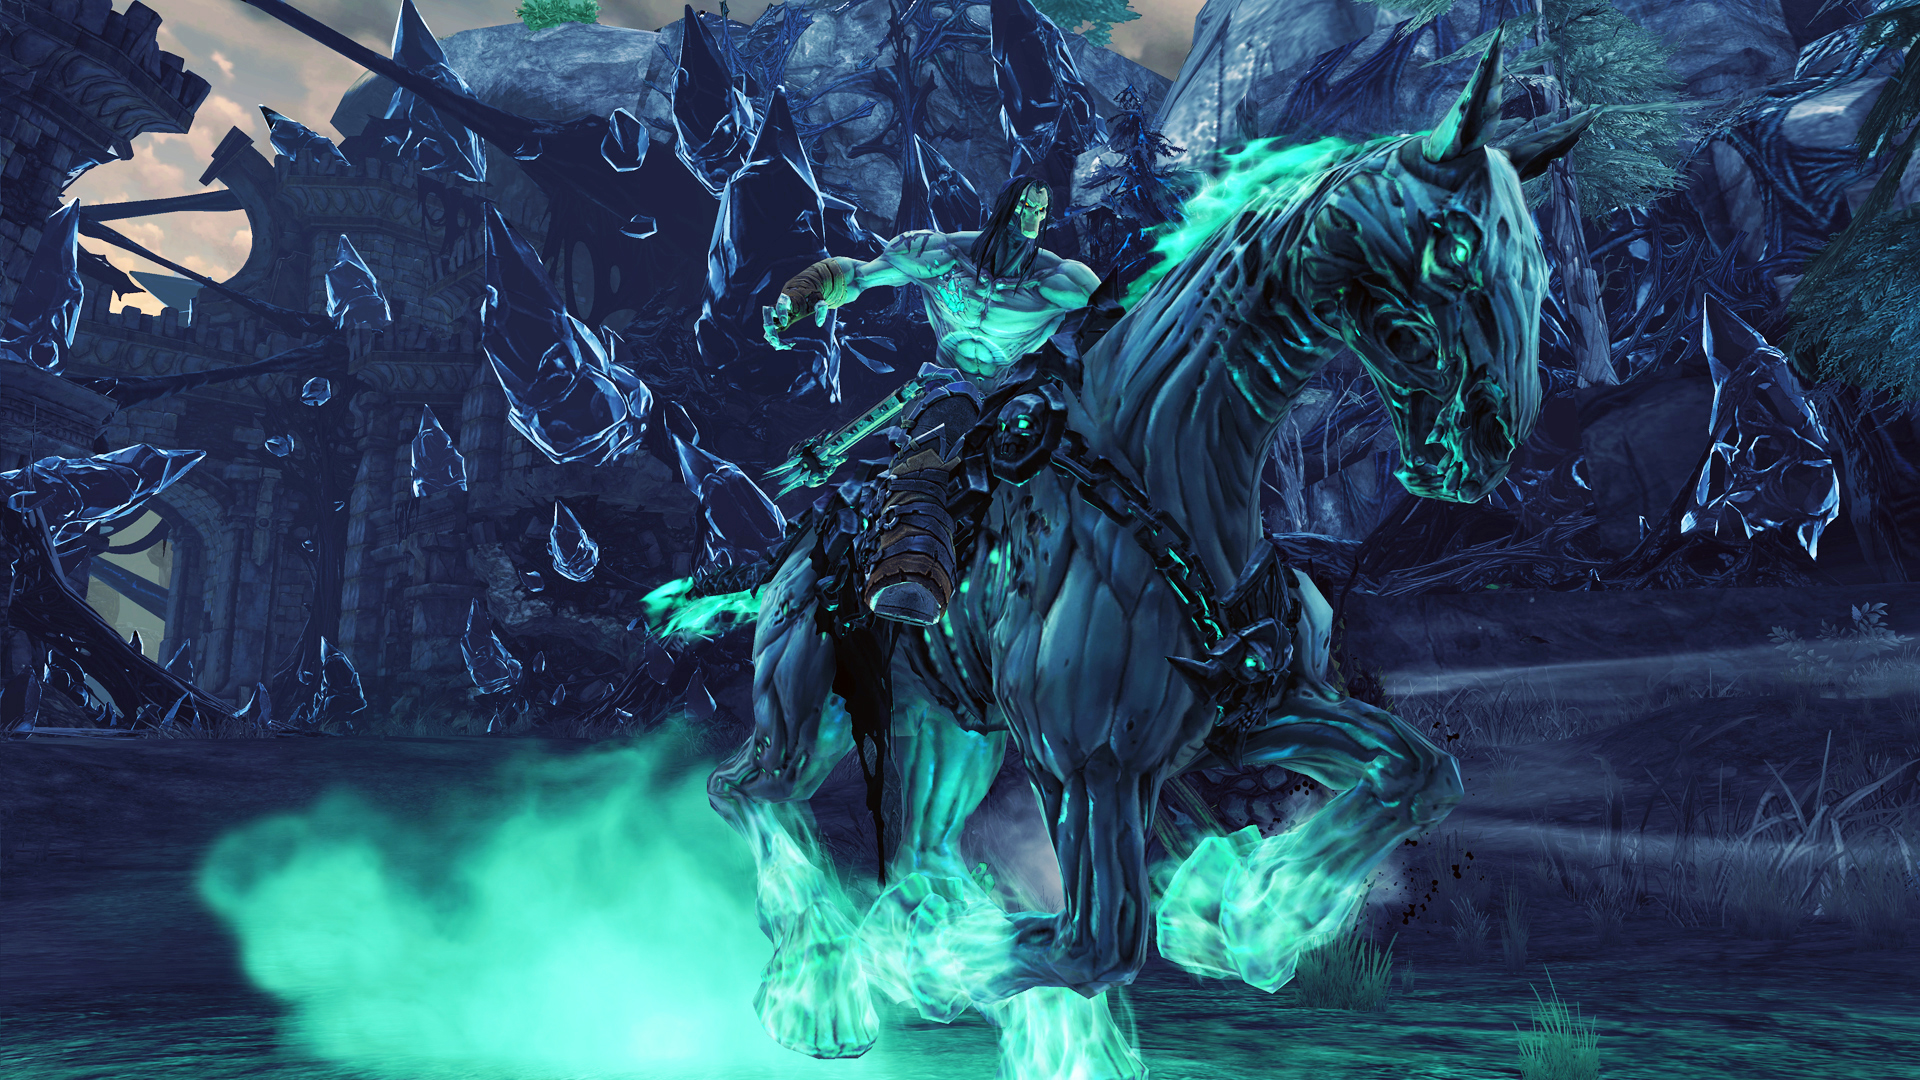 Photo of Nordic Games anuncia Darksiders II: Deathfinitive Edition para PS4 e Xbox One